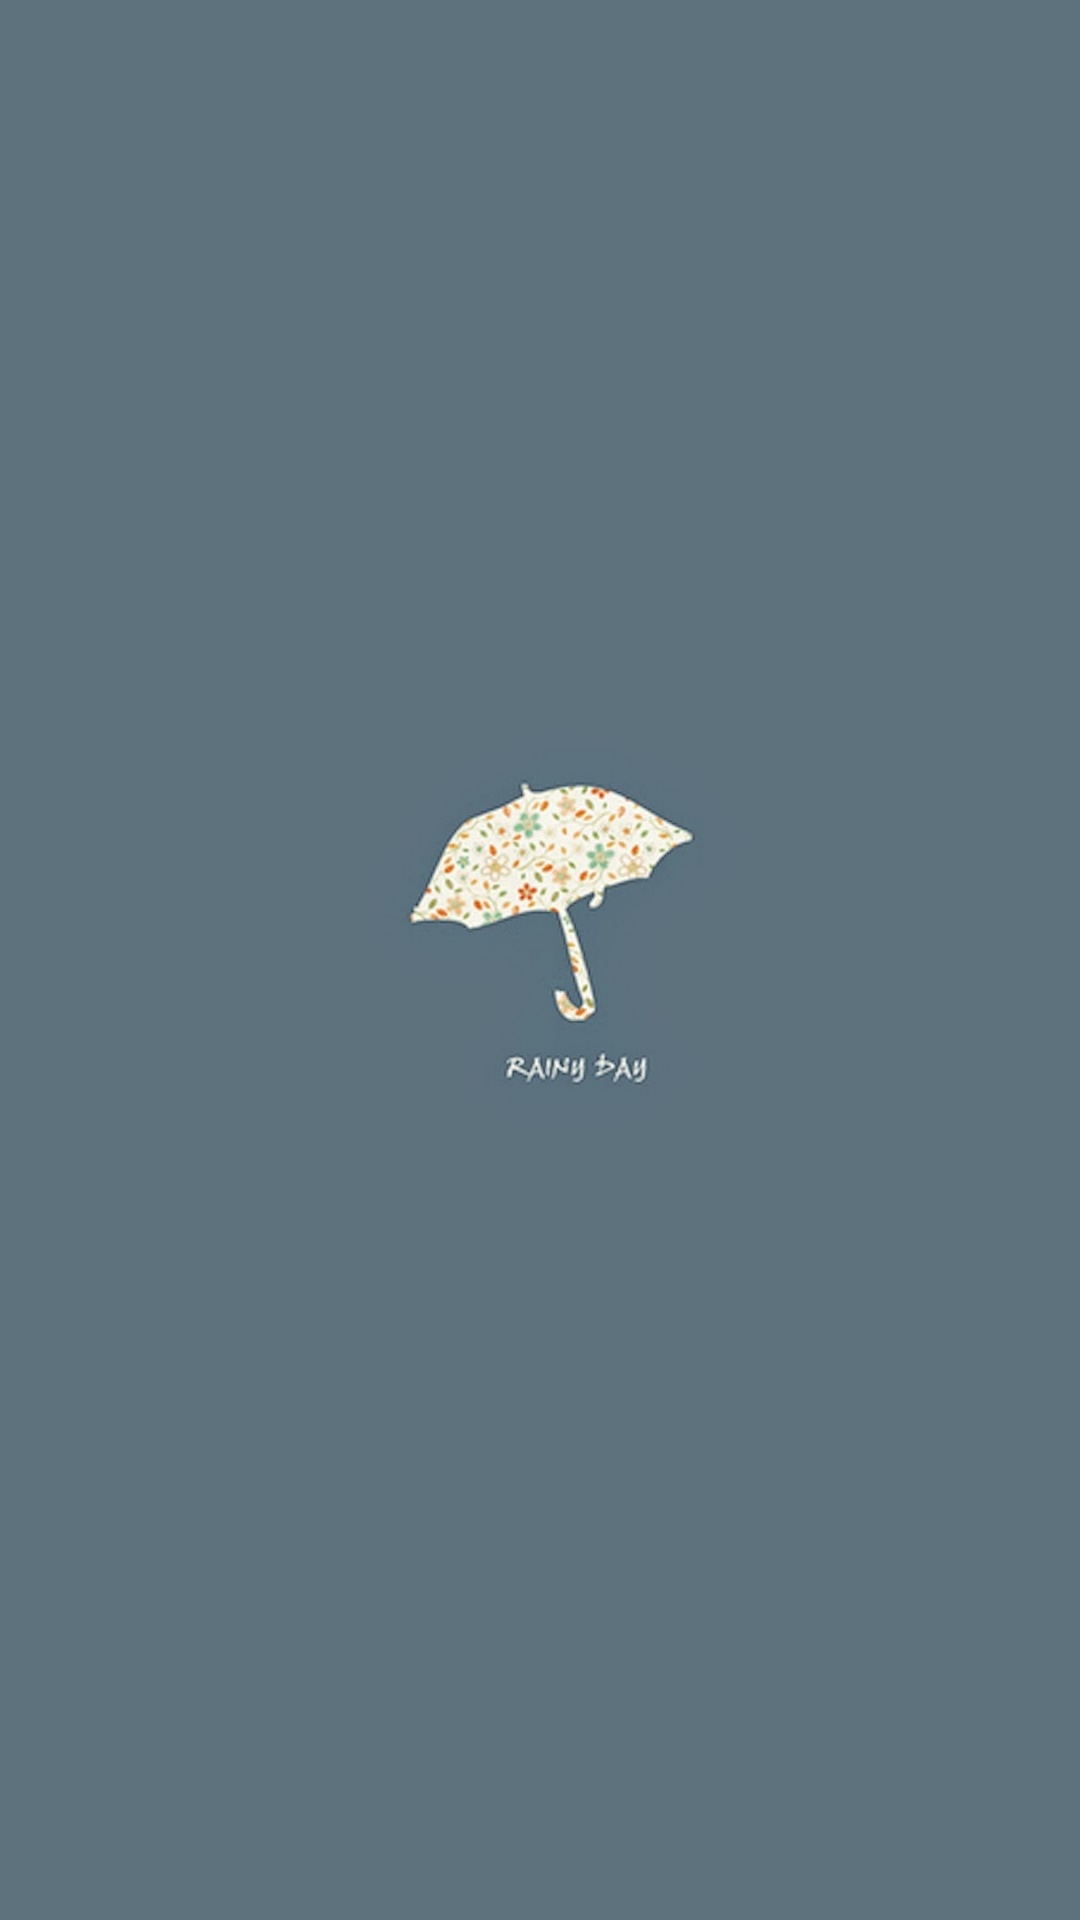 Must see   Wallpaper Home Screen Rain - rainy-day-simple-minimal-android-best-wallpaper  Picture_761183.jpg